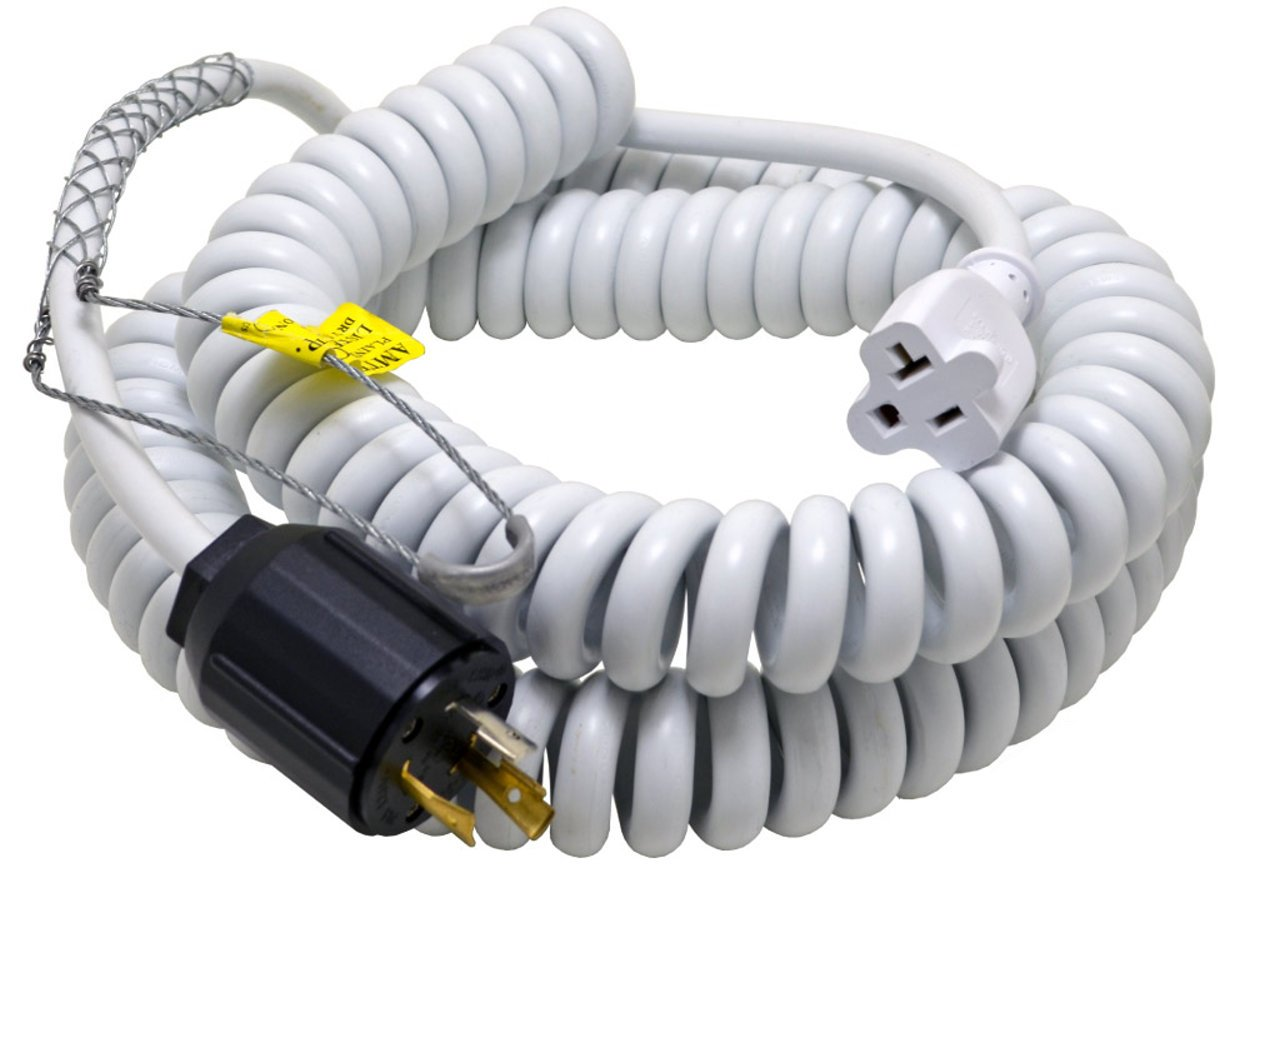 Conntek 70046-L530 Up to 15-Feet Heavy Duty 12/3 Coiled Spring Cord 30-Amp 125V L5-30 Plug with Drop Grip to U.S 15/20-Amp Female Connector